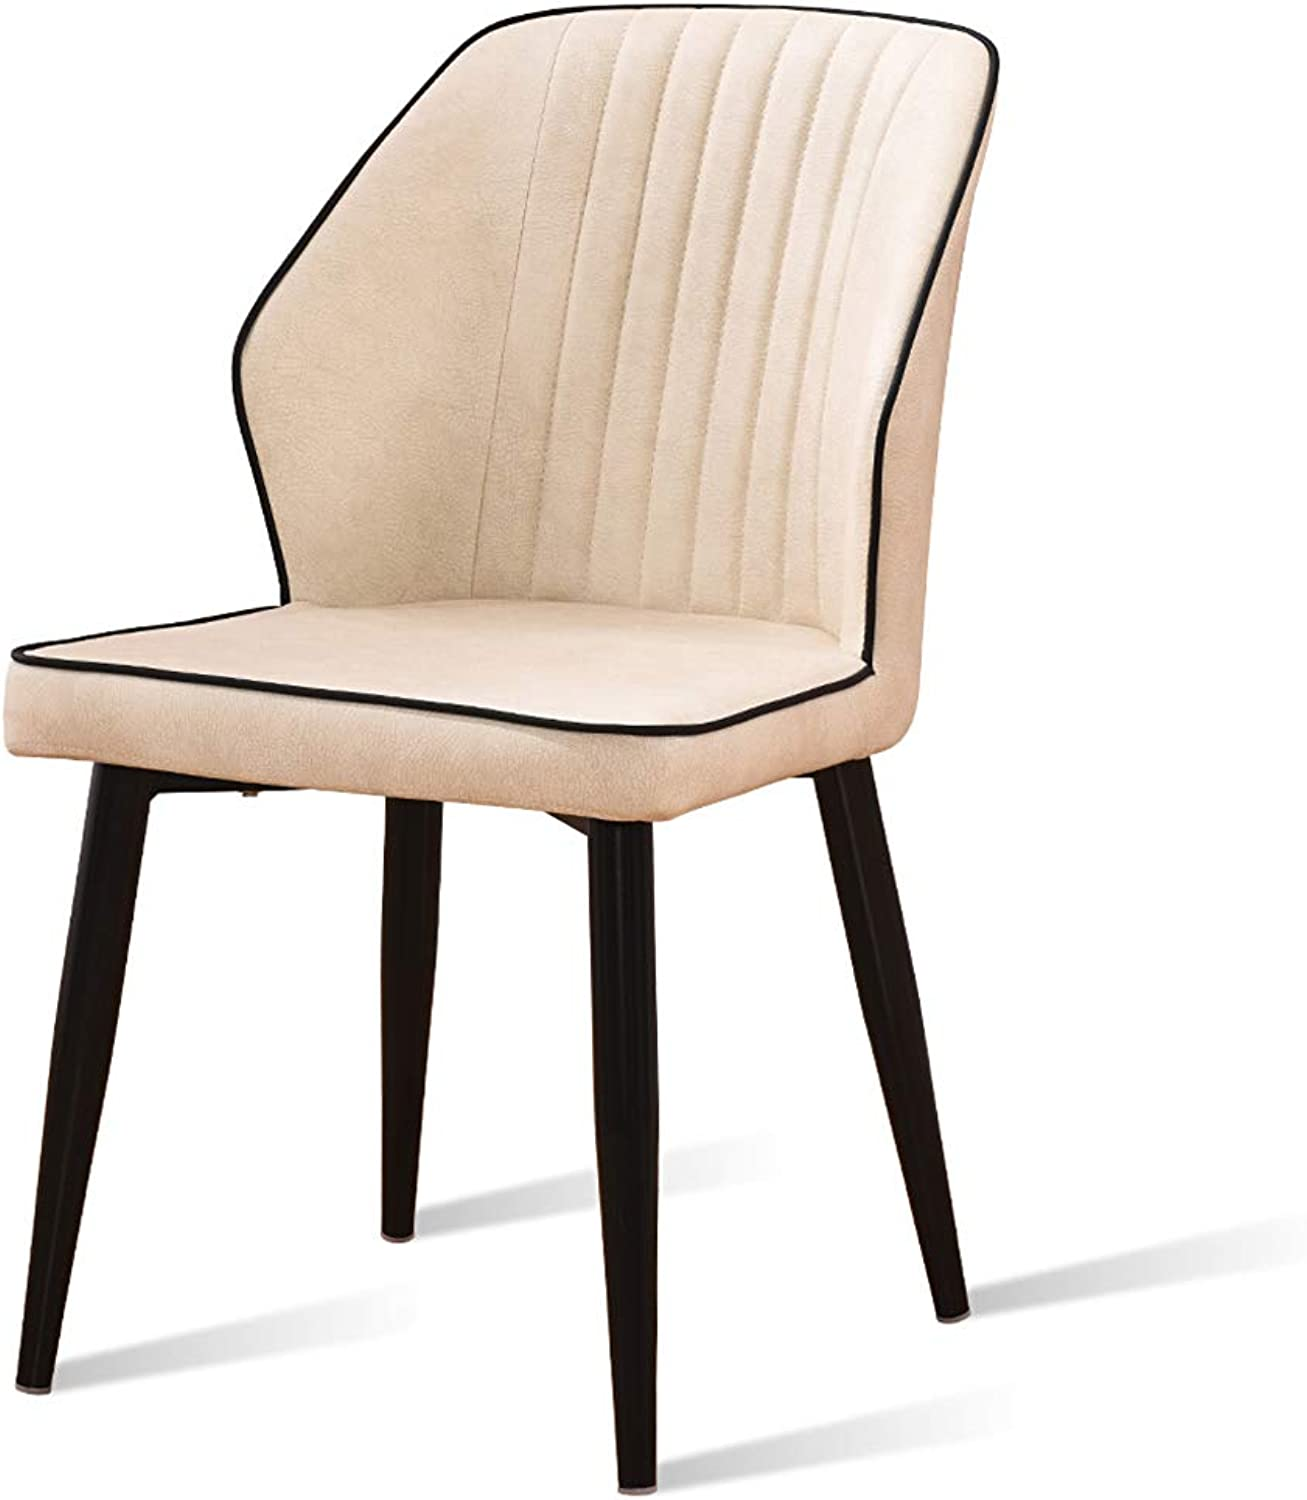 Industrial Wind Iron Dining Chair, Coffee Chair, Easy to Clean Technology Leather + High Resilience Sponge Filling, for Restaurant Office Counter Family